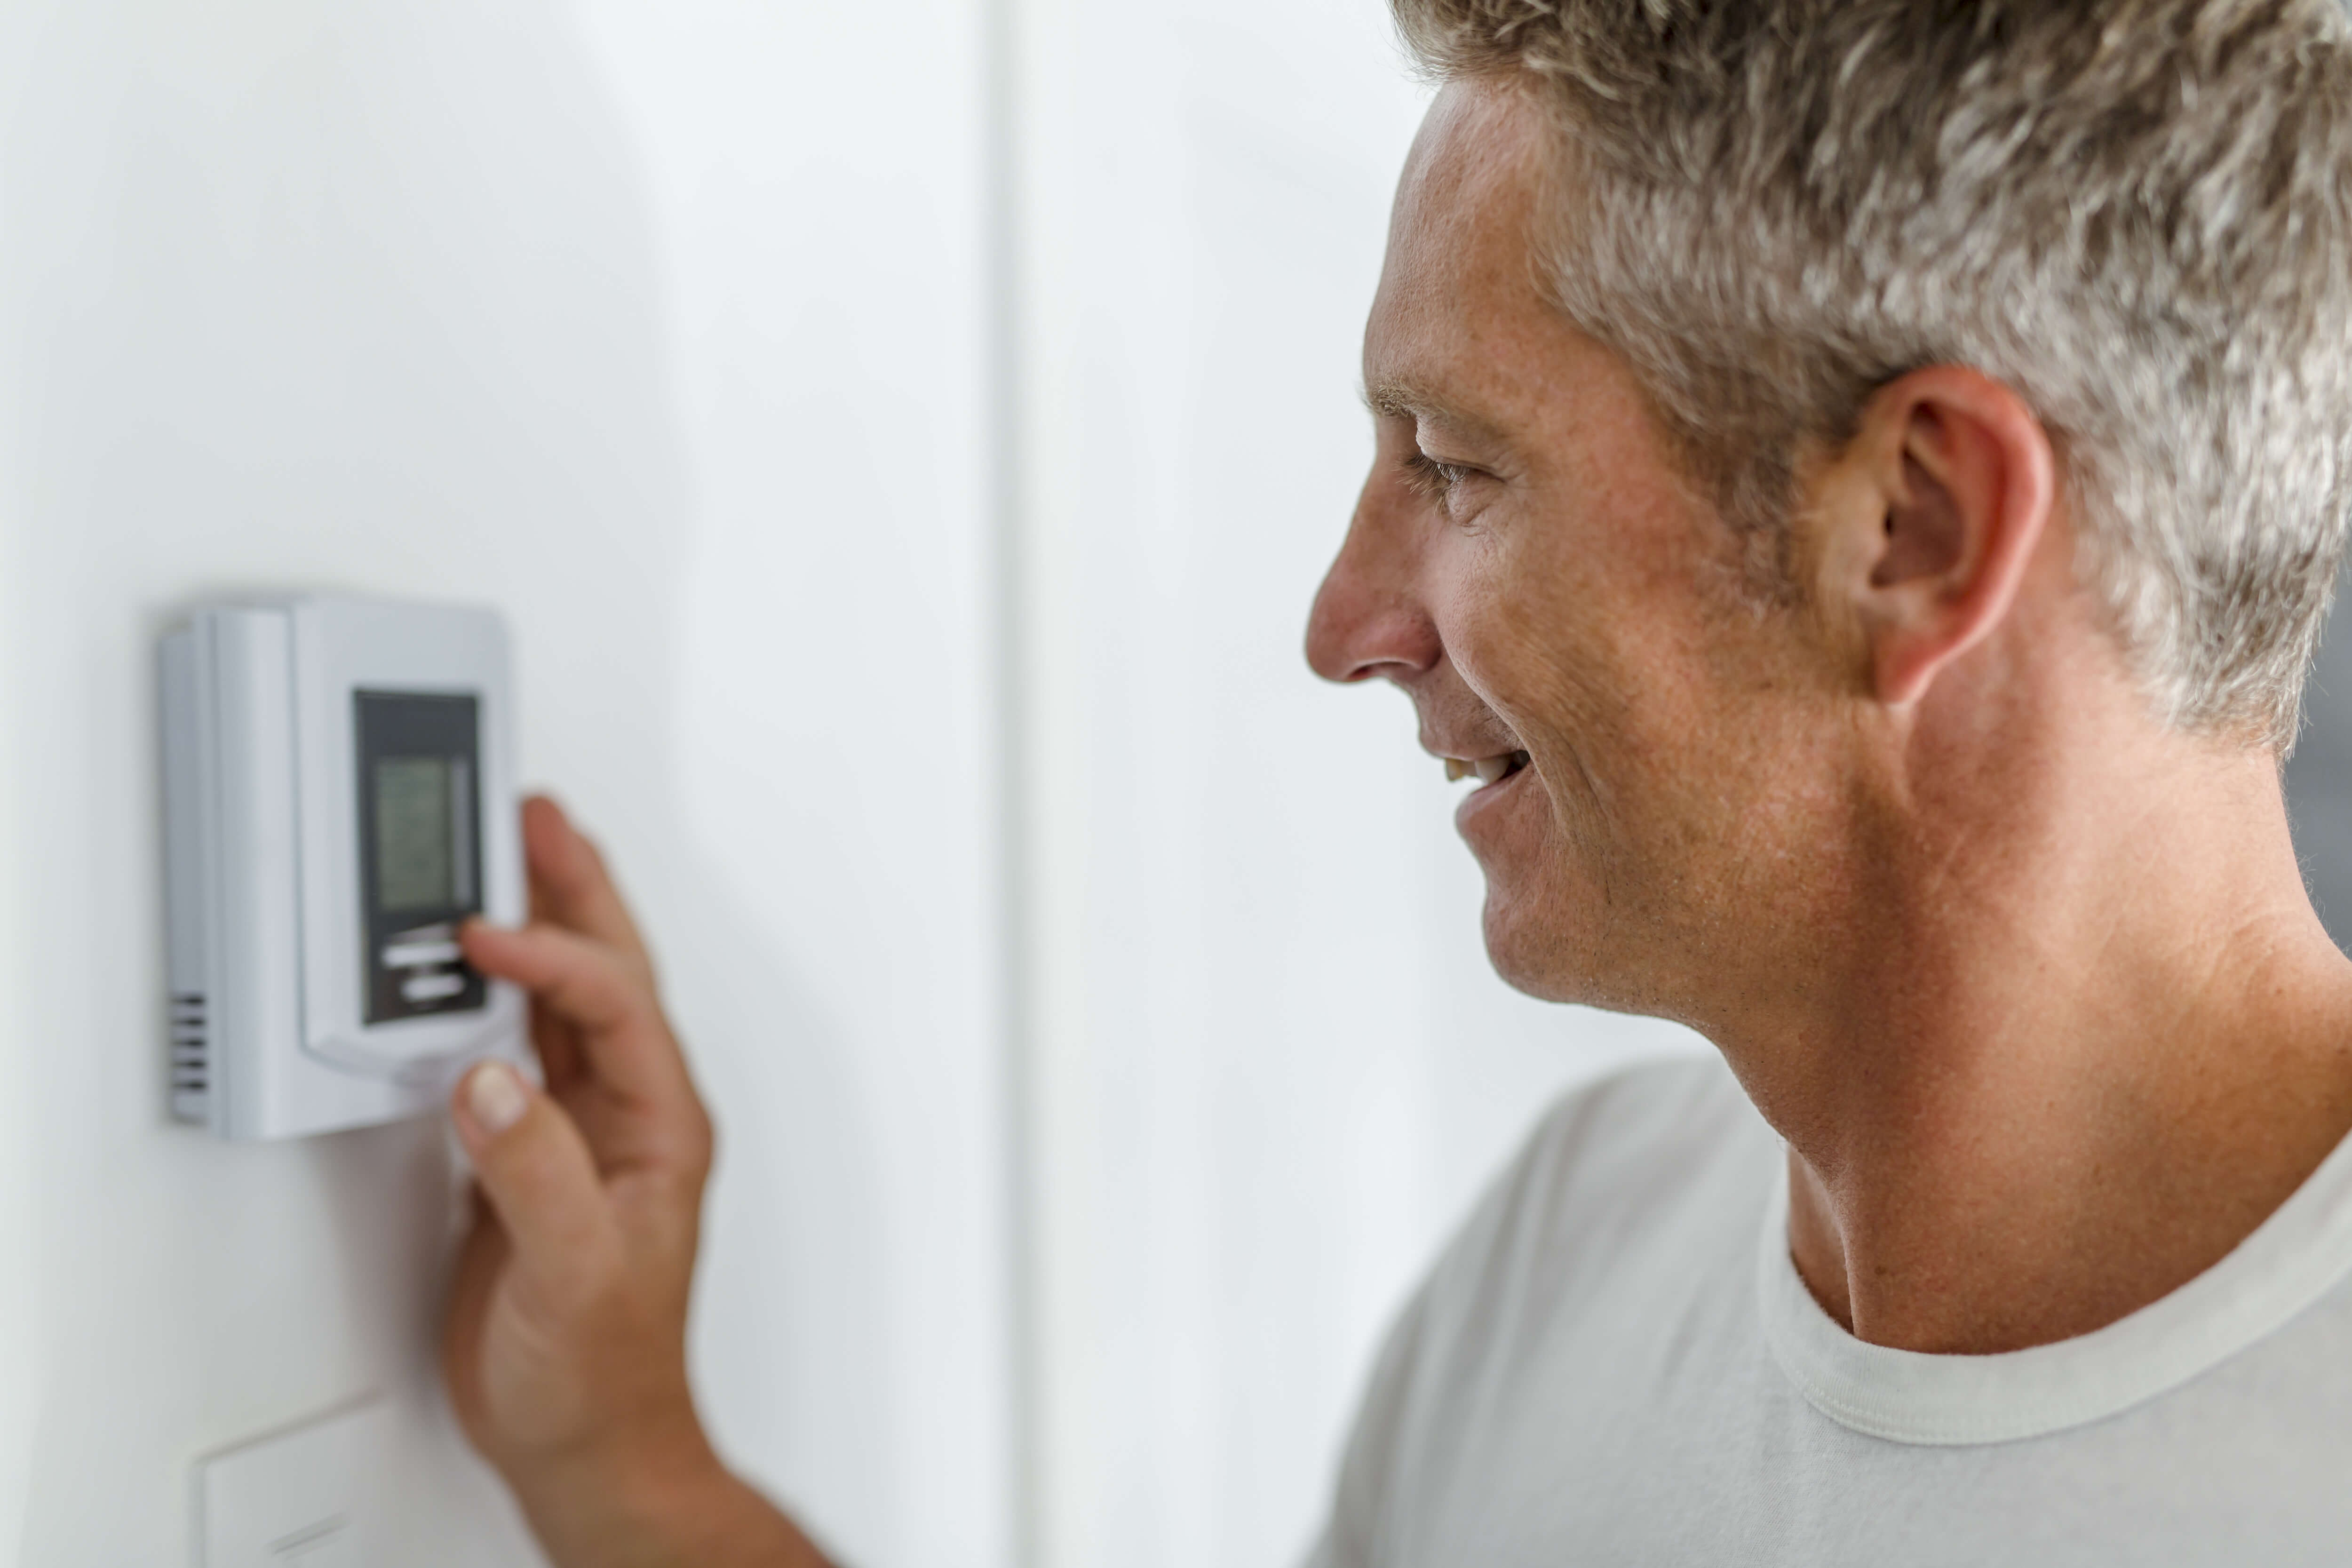 Ductless heating repairs in Chelmsford, MA